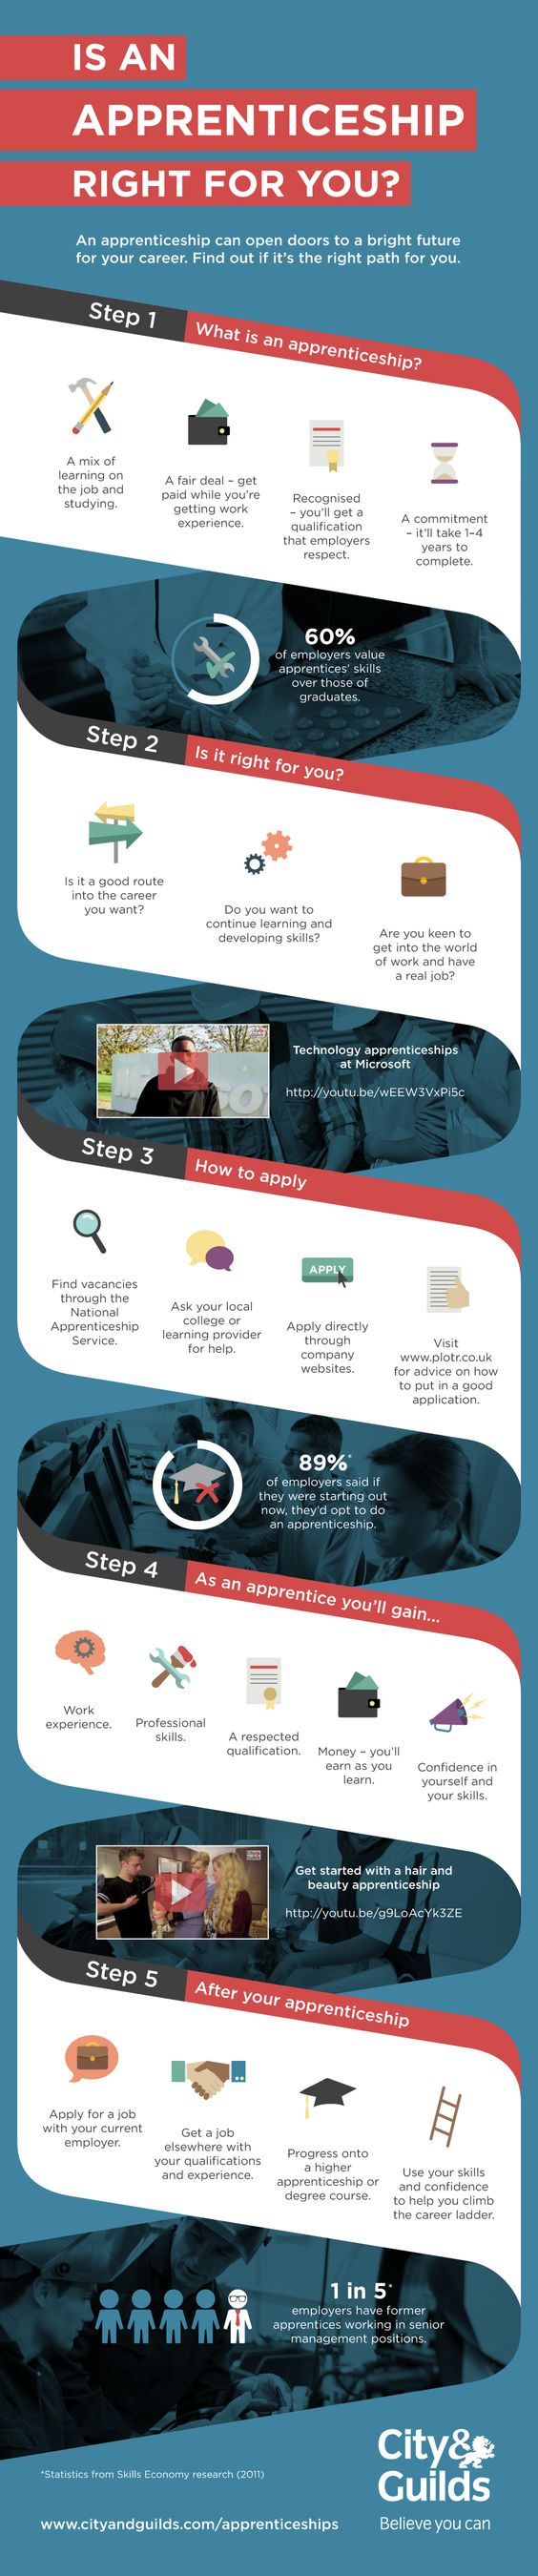 Infographic: is an apprenticeship right for you?